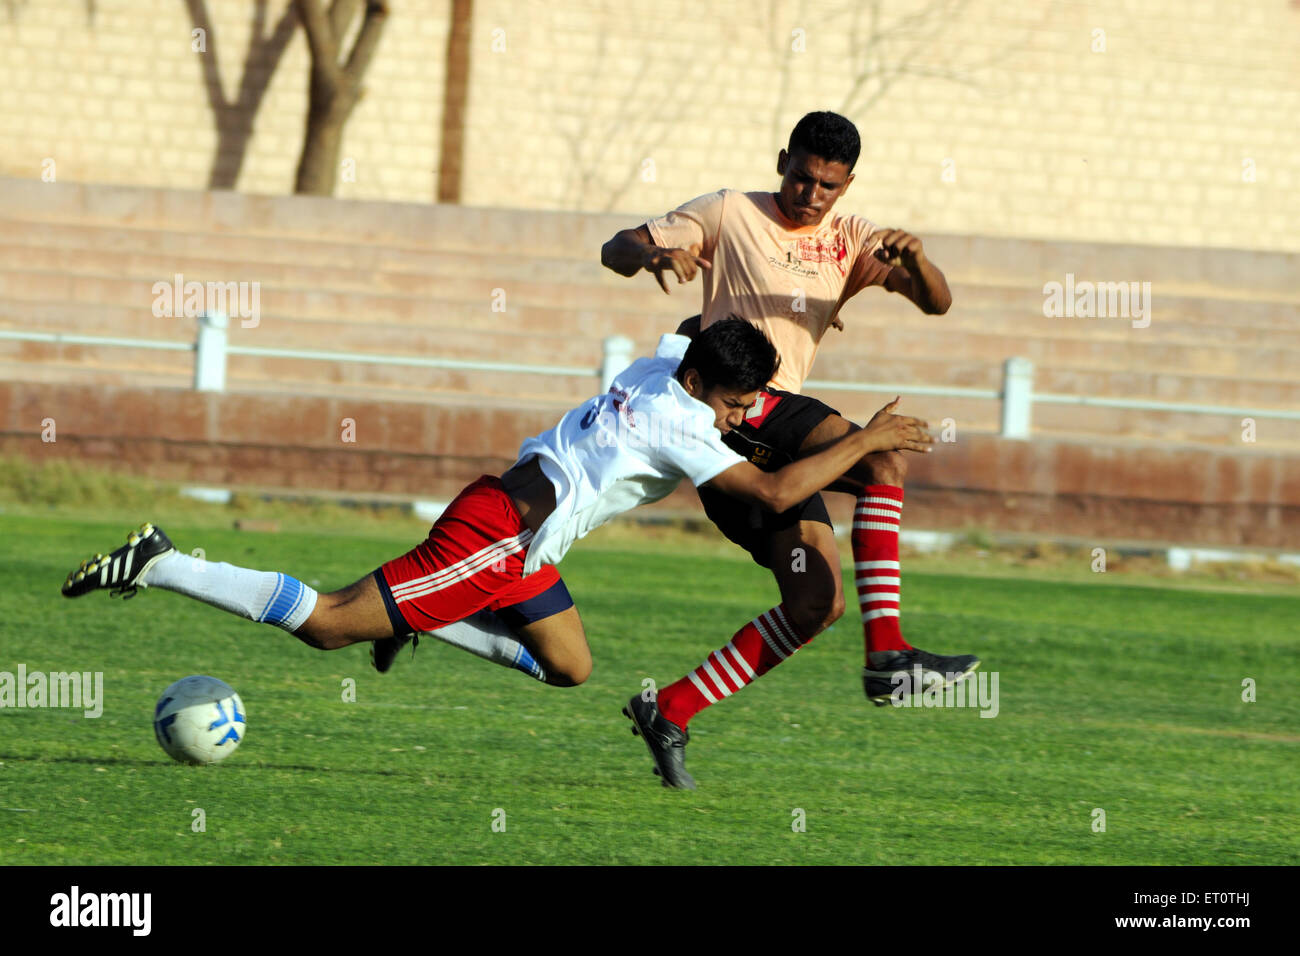 Playing soccer match MR#786 - Stock Image